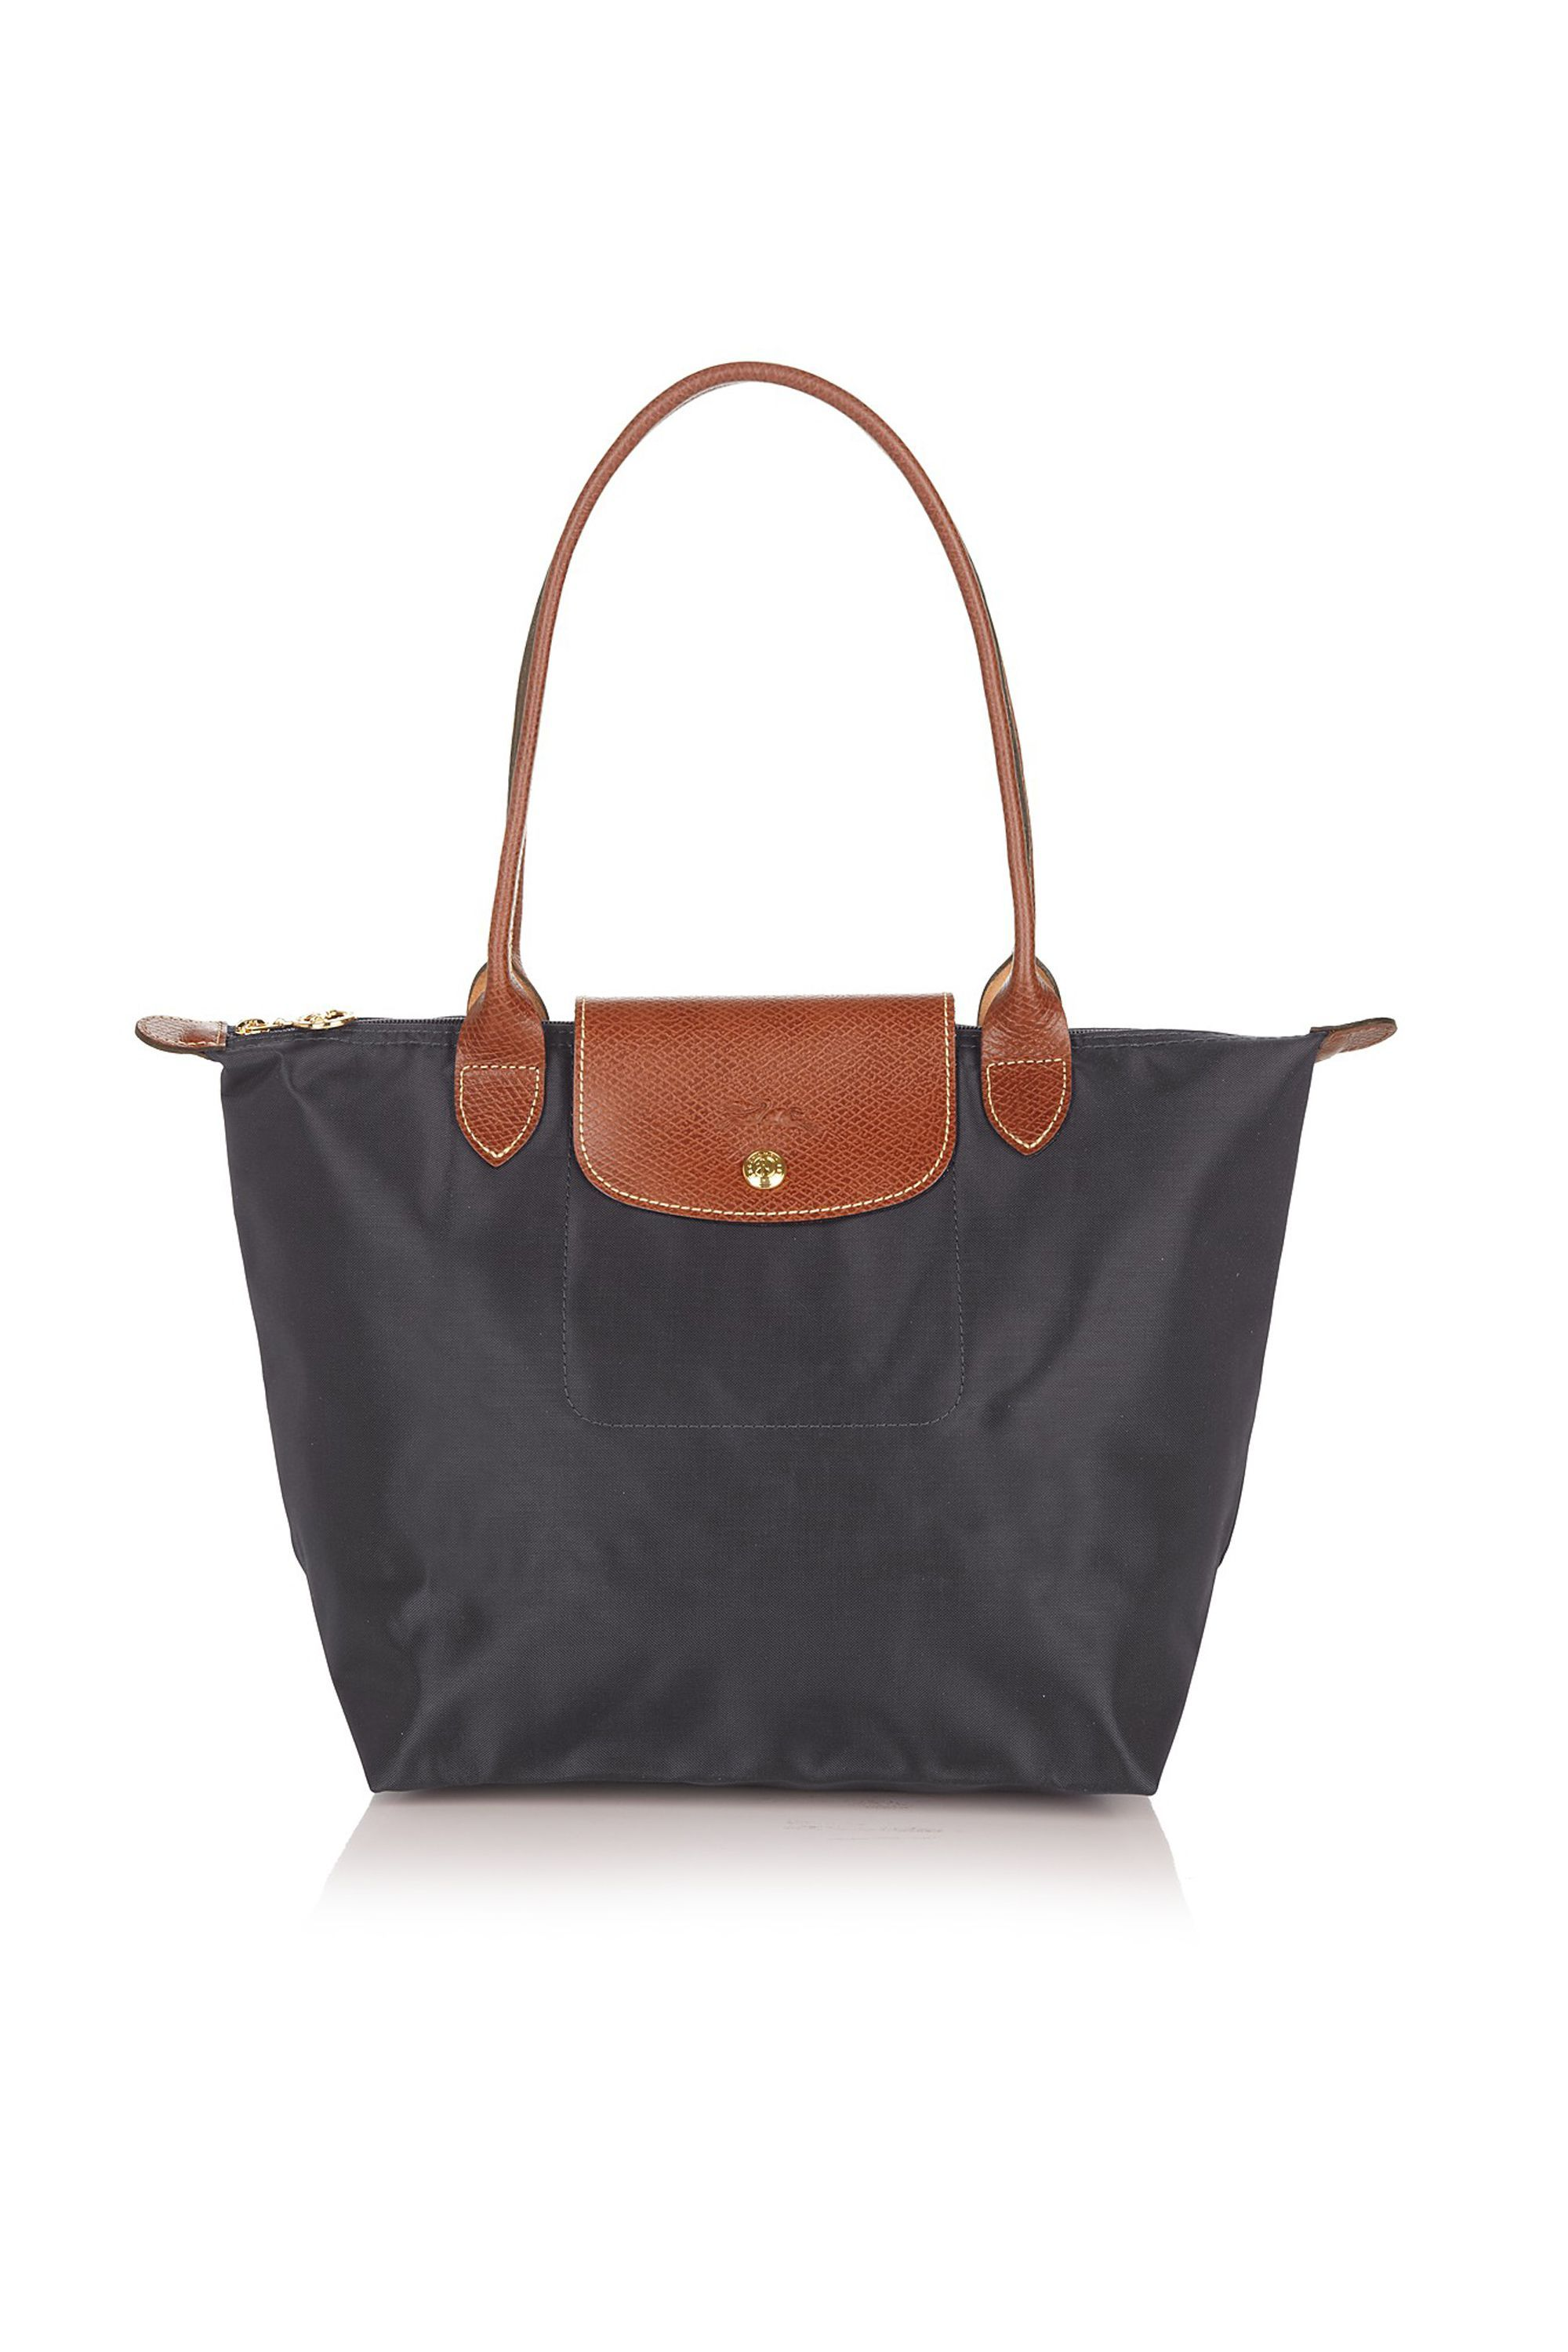 3e3116dd3b 14 Cool Work Bags for Professional Women That Aren t Boring